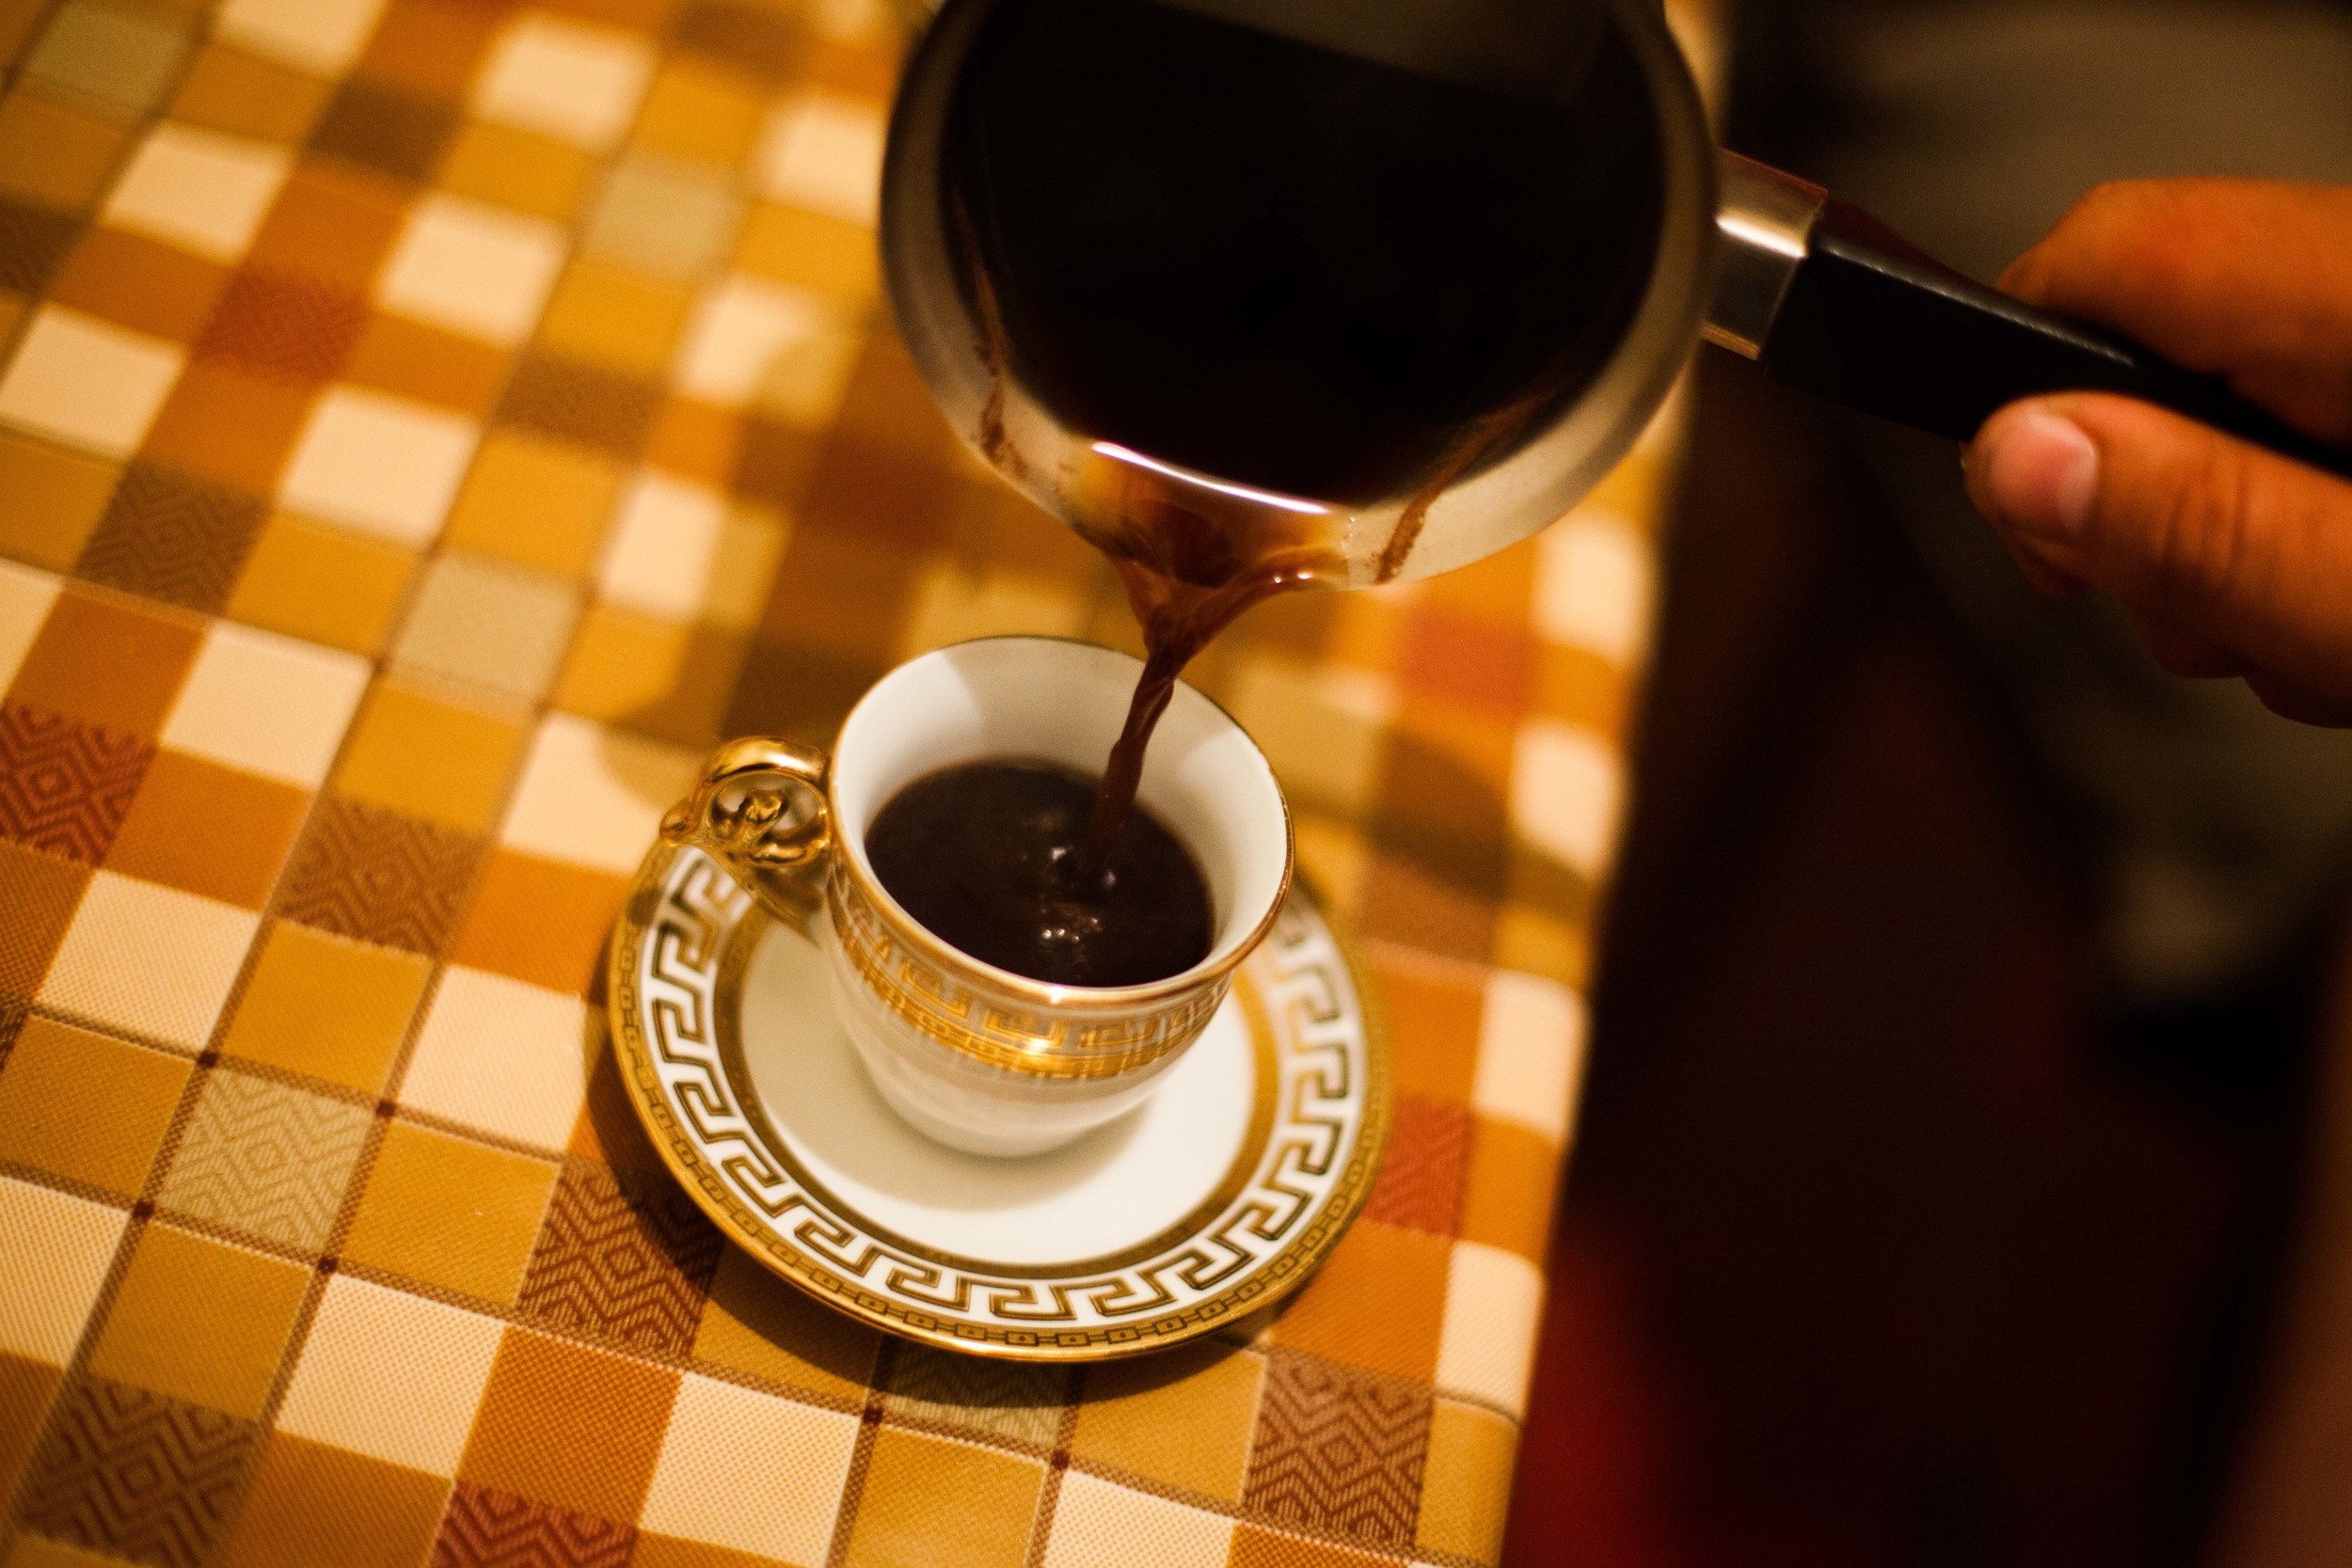 Small cups of strong black coffee are served multiple times throughout the day and are normally drank while socializing with friends.